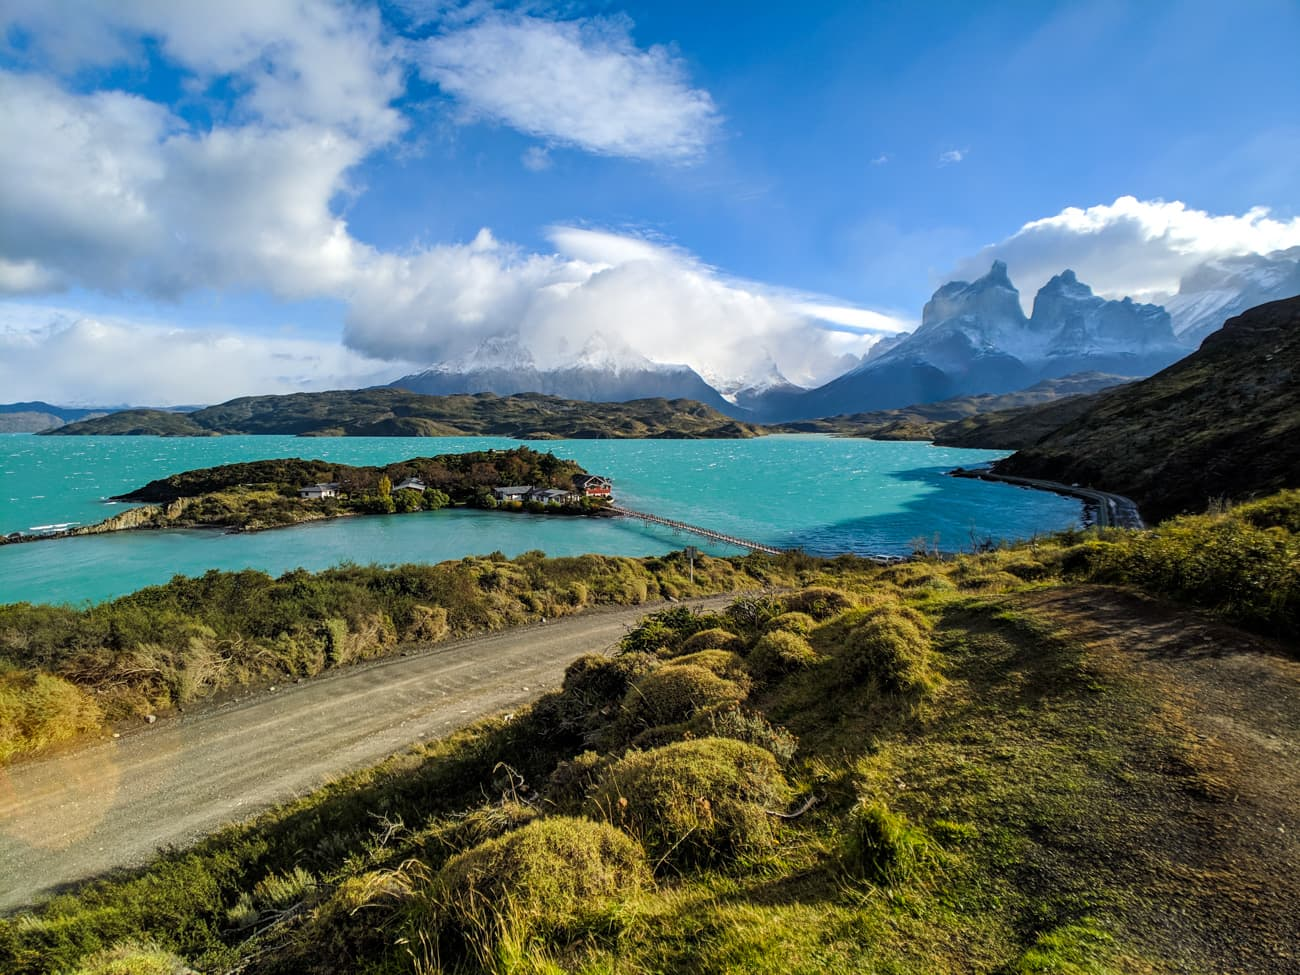 Puerto natales is the closest city to torres del paine national park